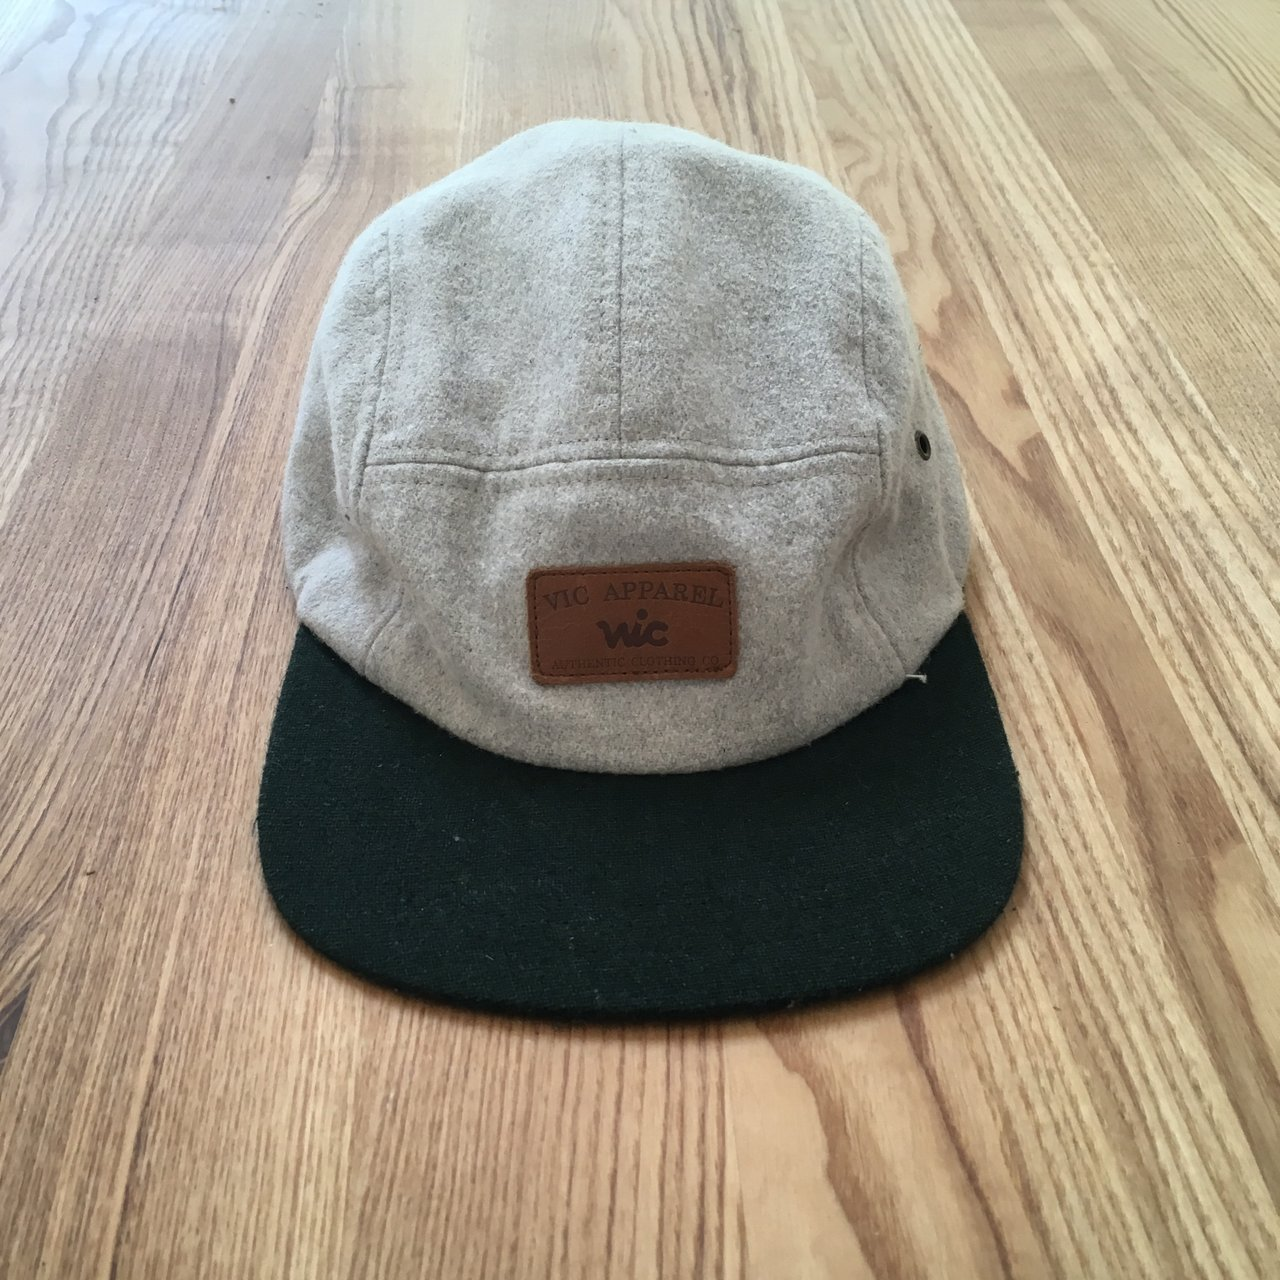 f1a1c1a87bdee Vic apparel grey and green 5 panel cap with leather buckle - Depop